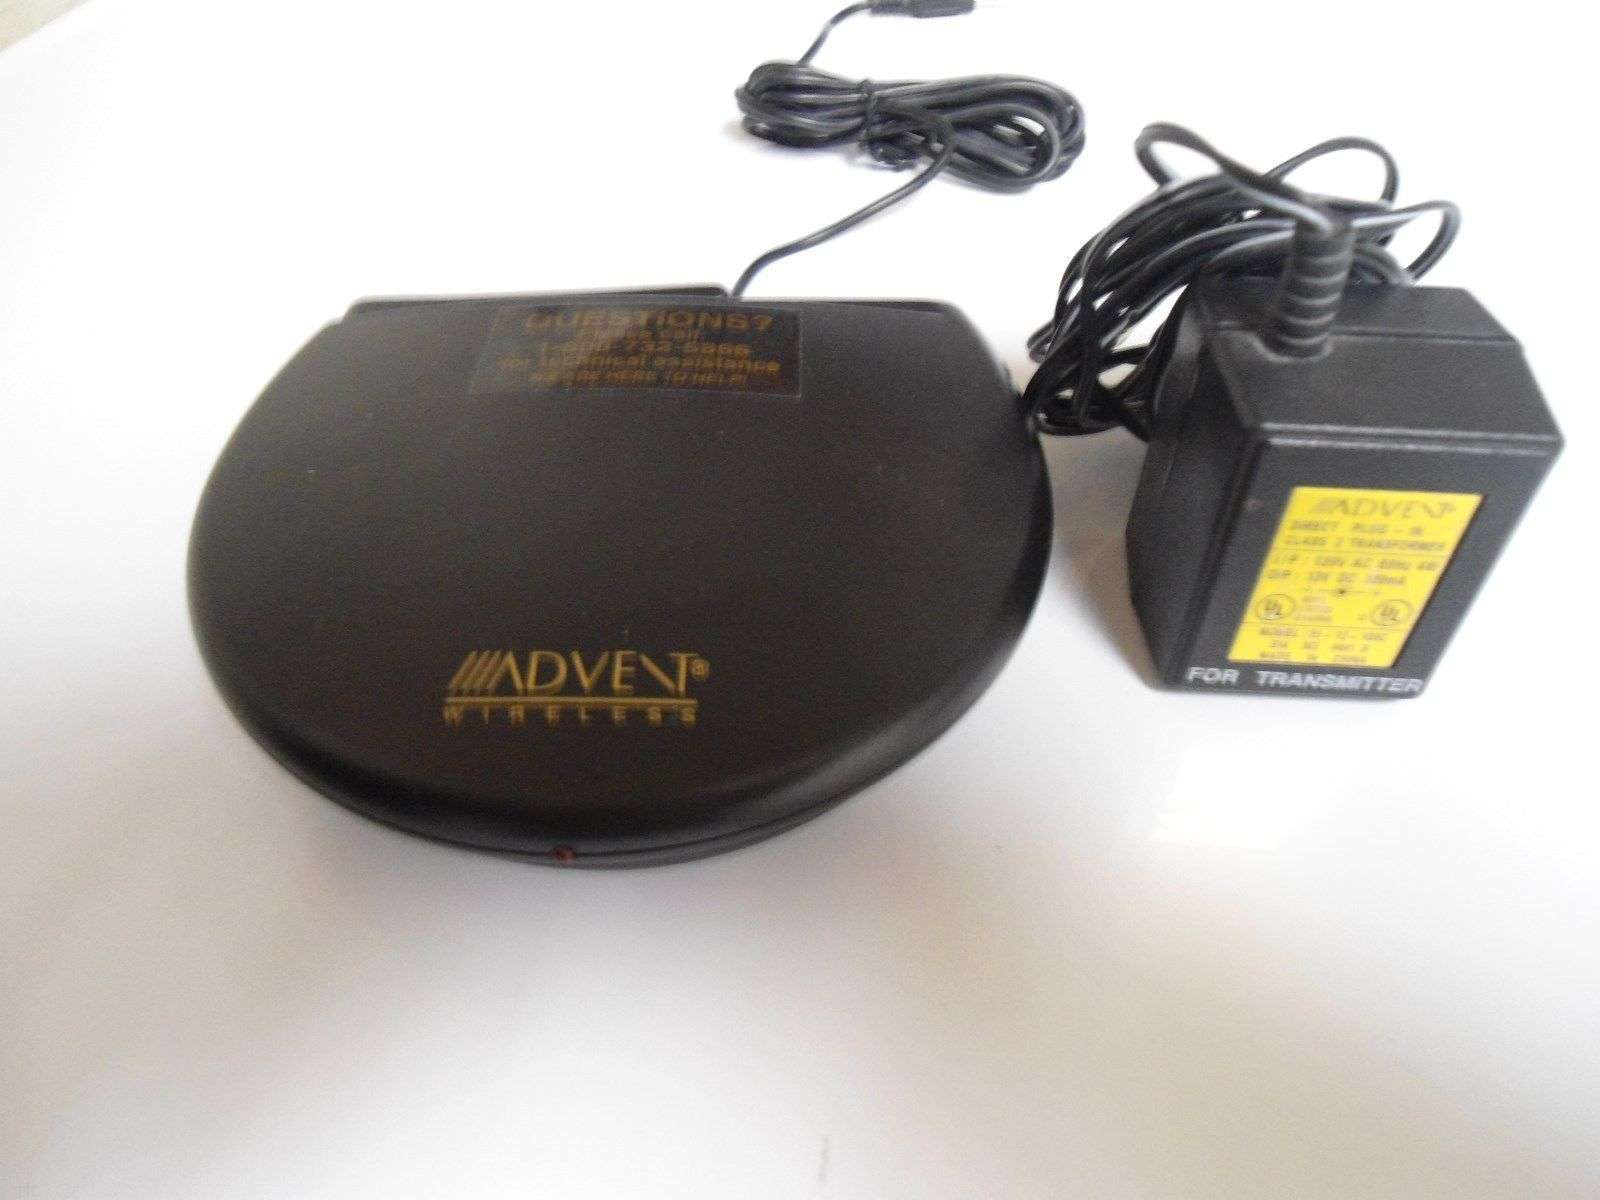 Advent Recoton 900 MHz Transmitter LLP 110 A Wireless Headphones Speakers LLP11A For Sale